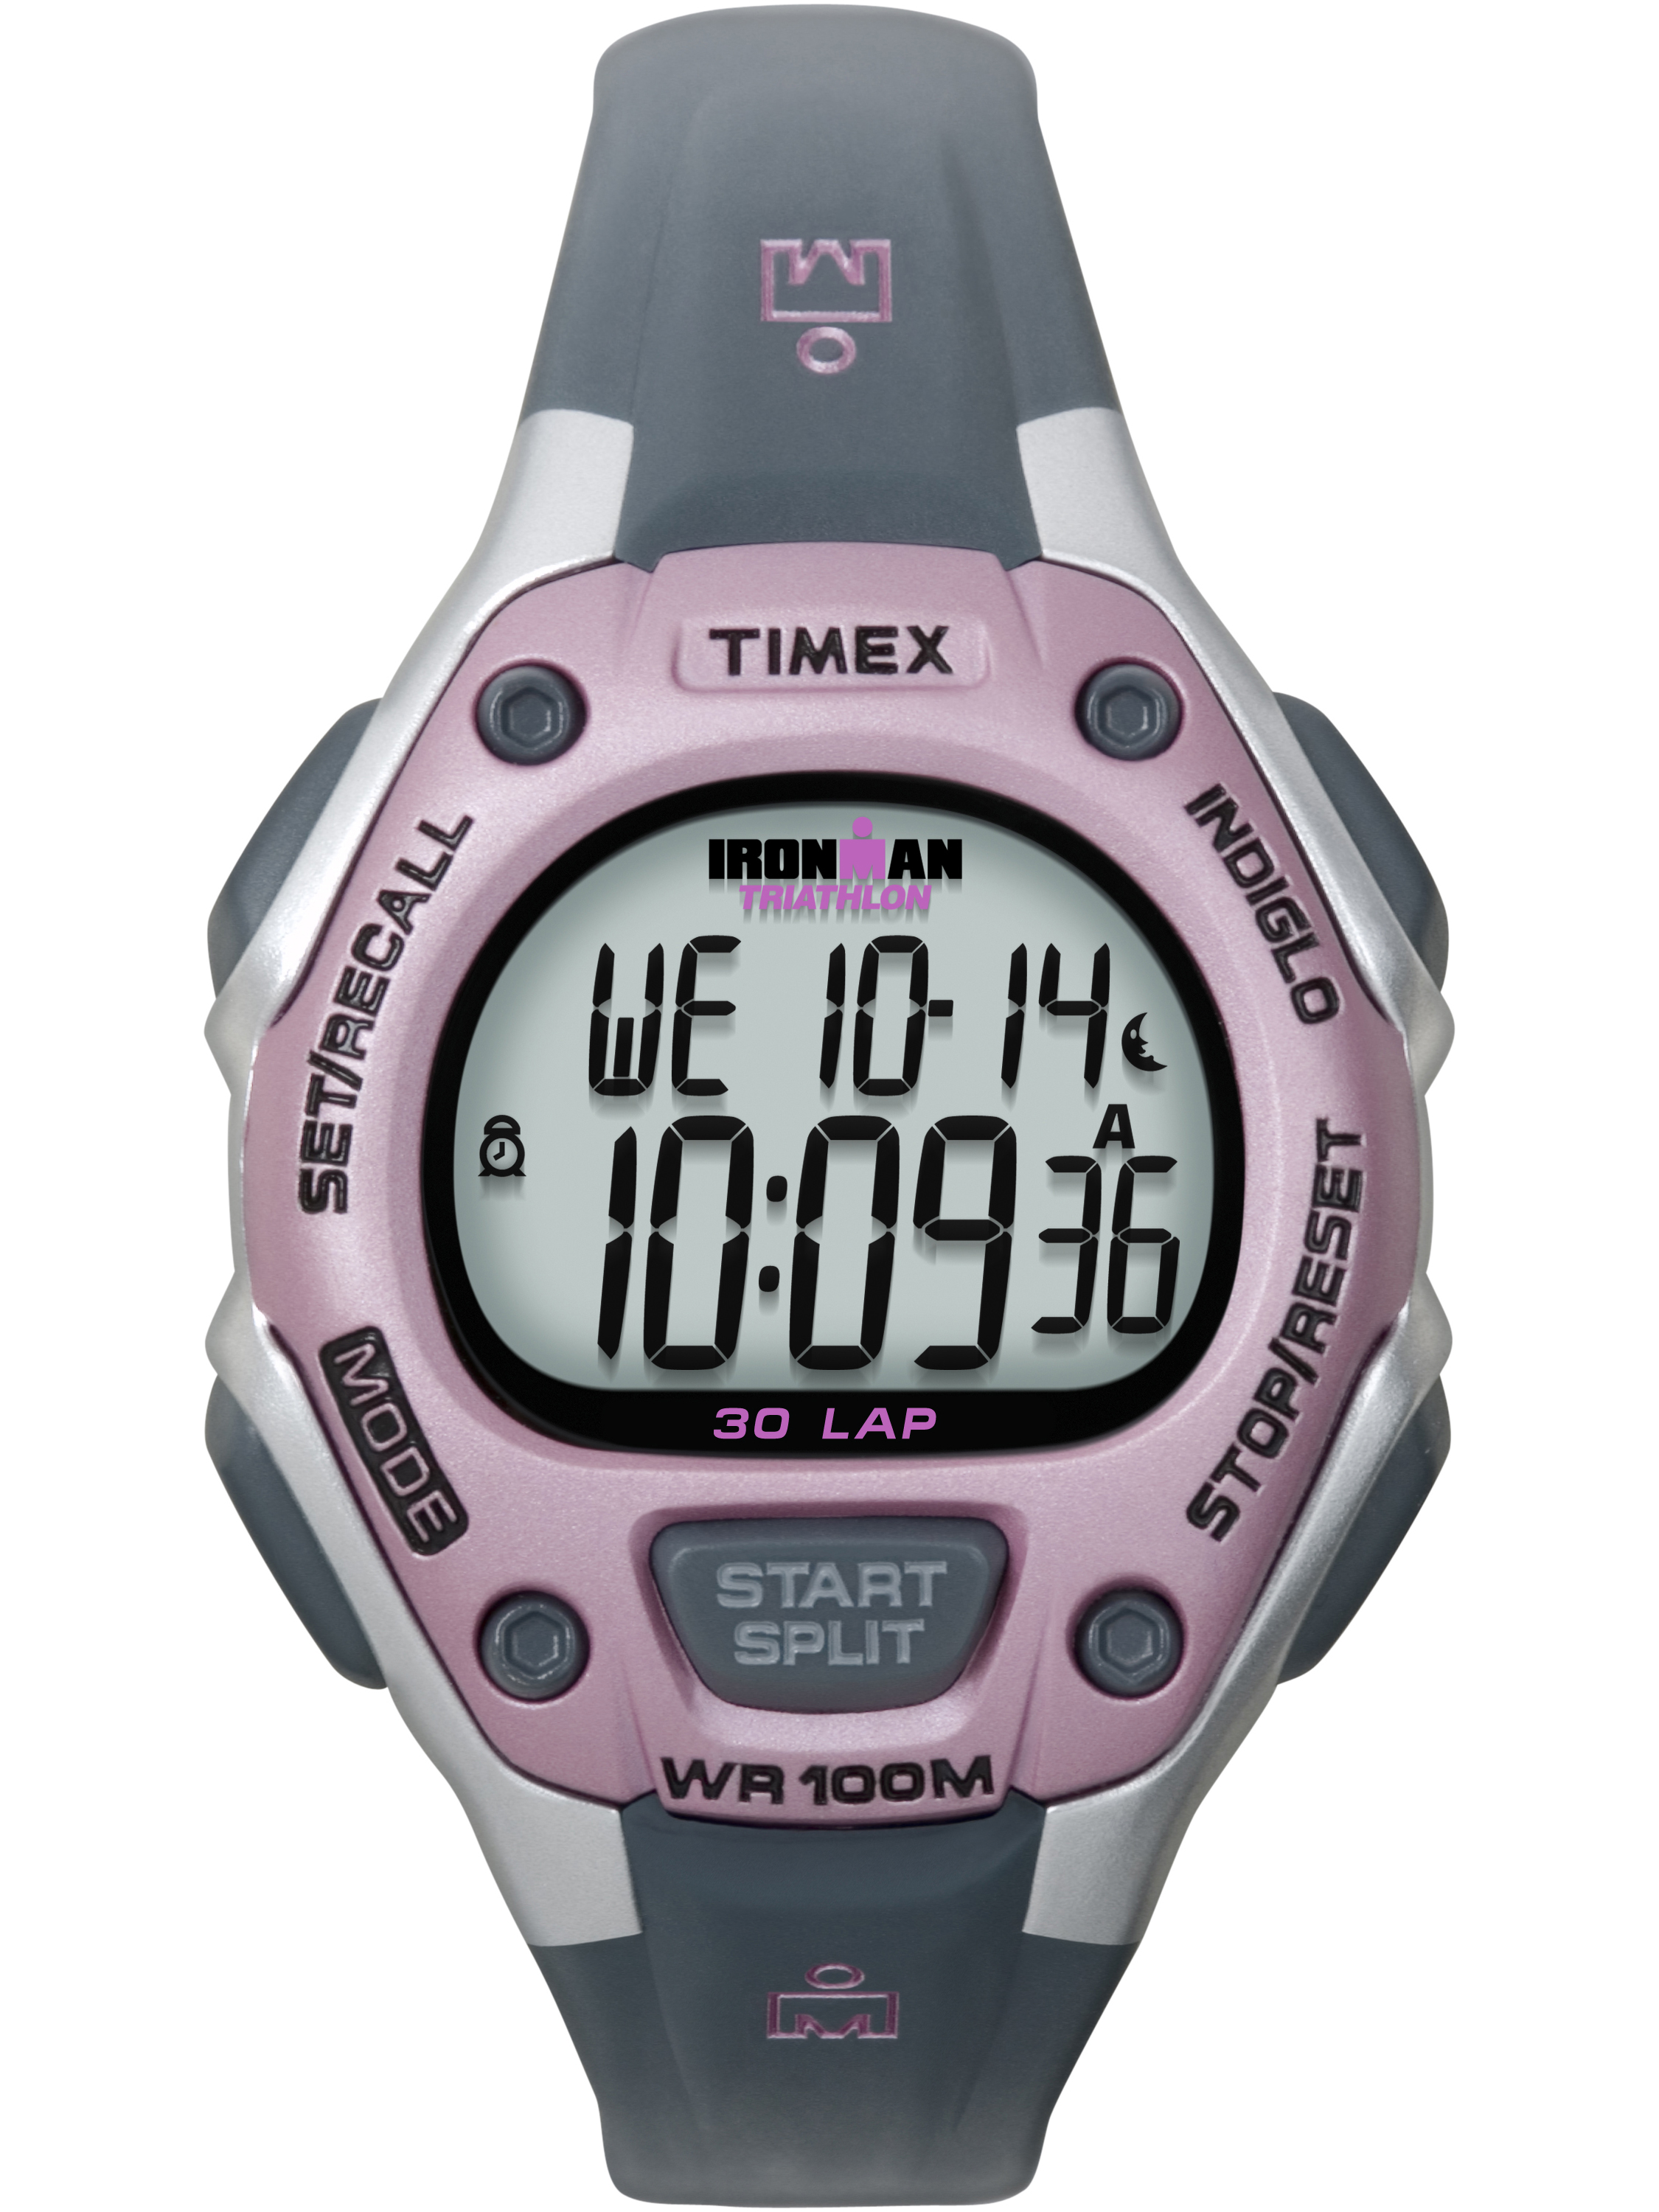 Timex Timex Women's Ironman Classic 30 Mid-Size Watch, Gray Resin Strap